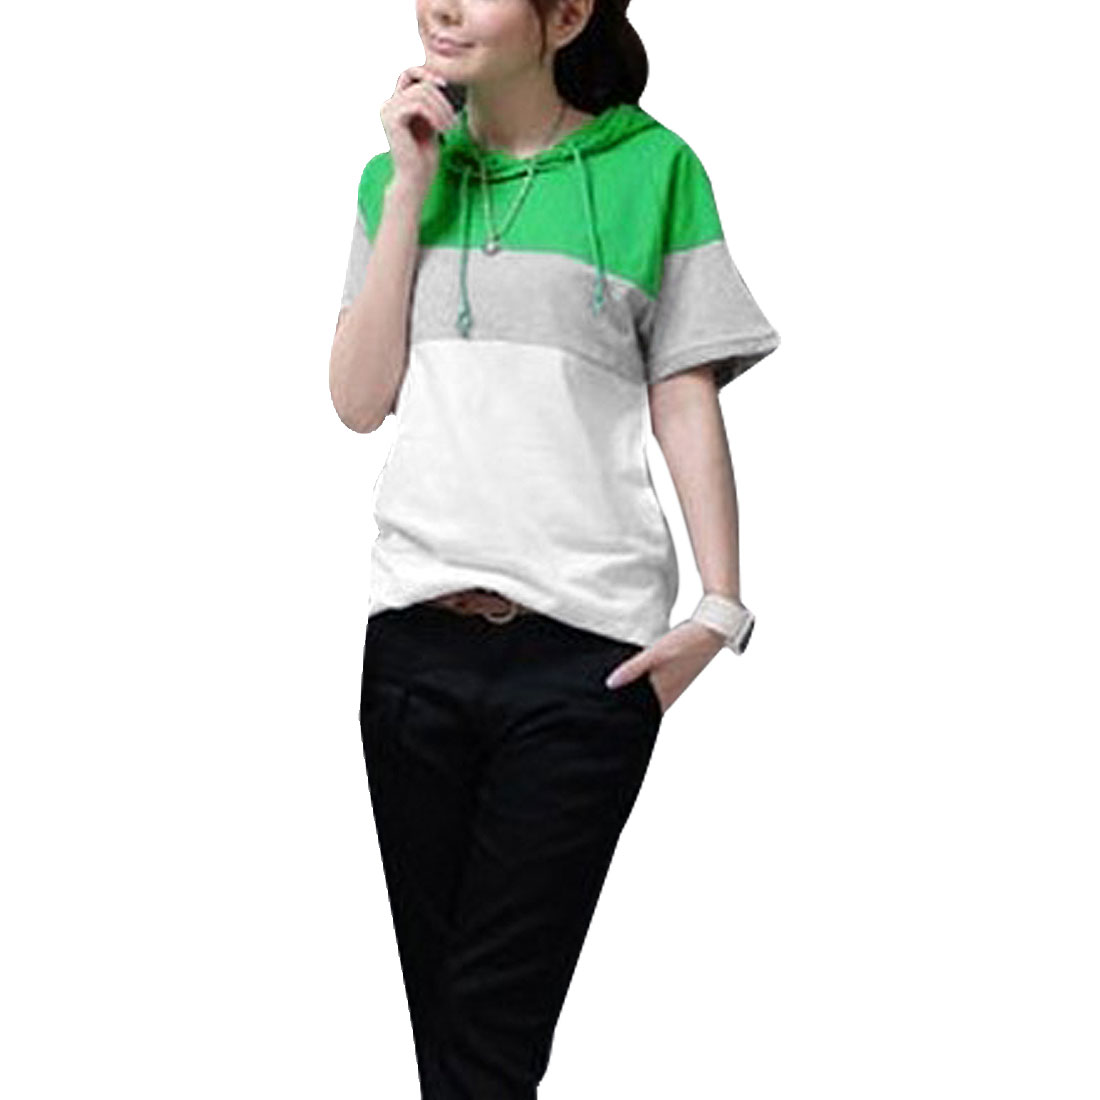 Woman Green White Gray Short Sleeves Hooded Shirt S